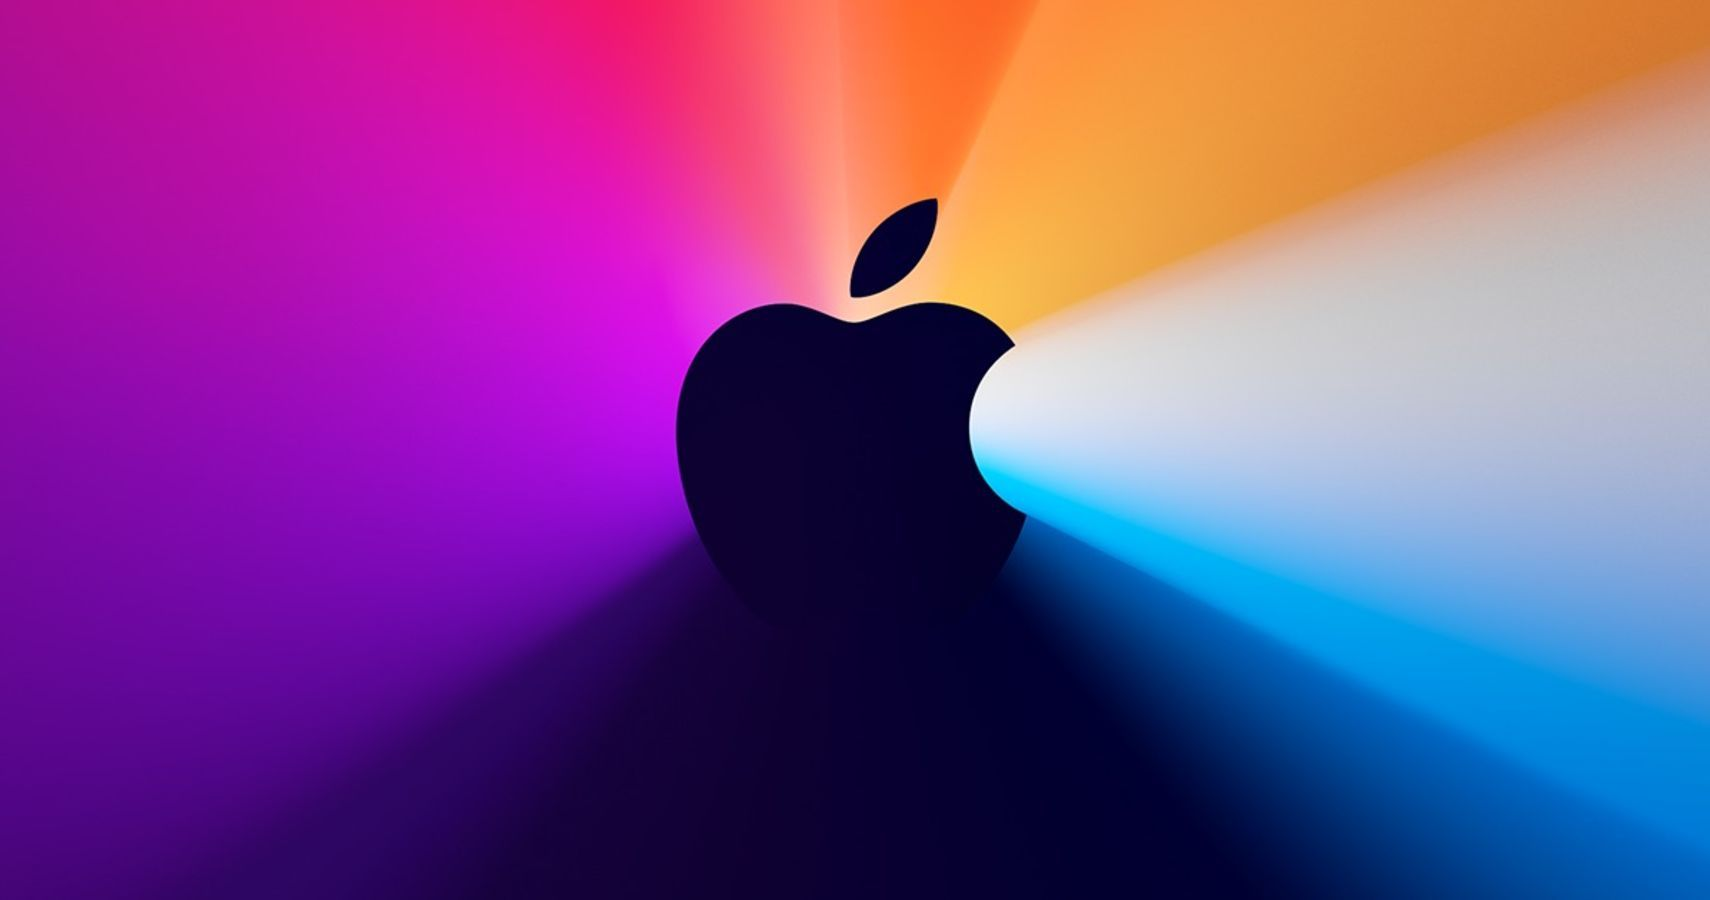 Apple Planning To Launch VR Headset In 2022